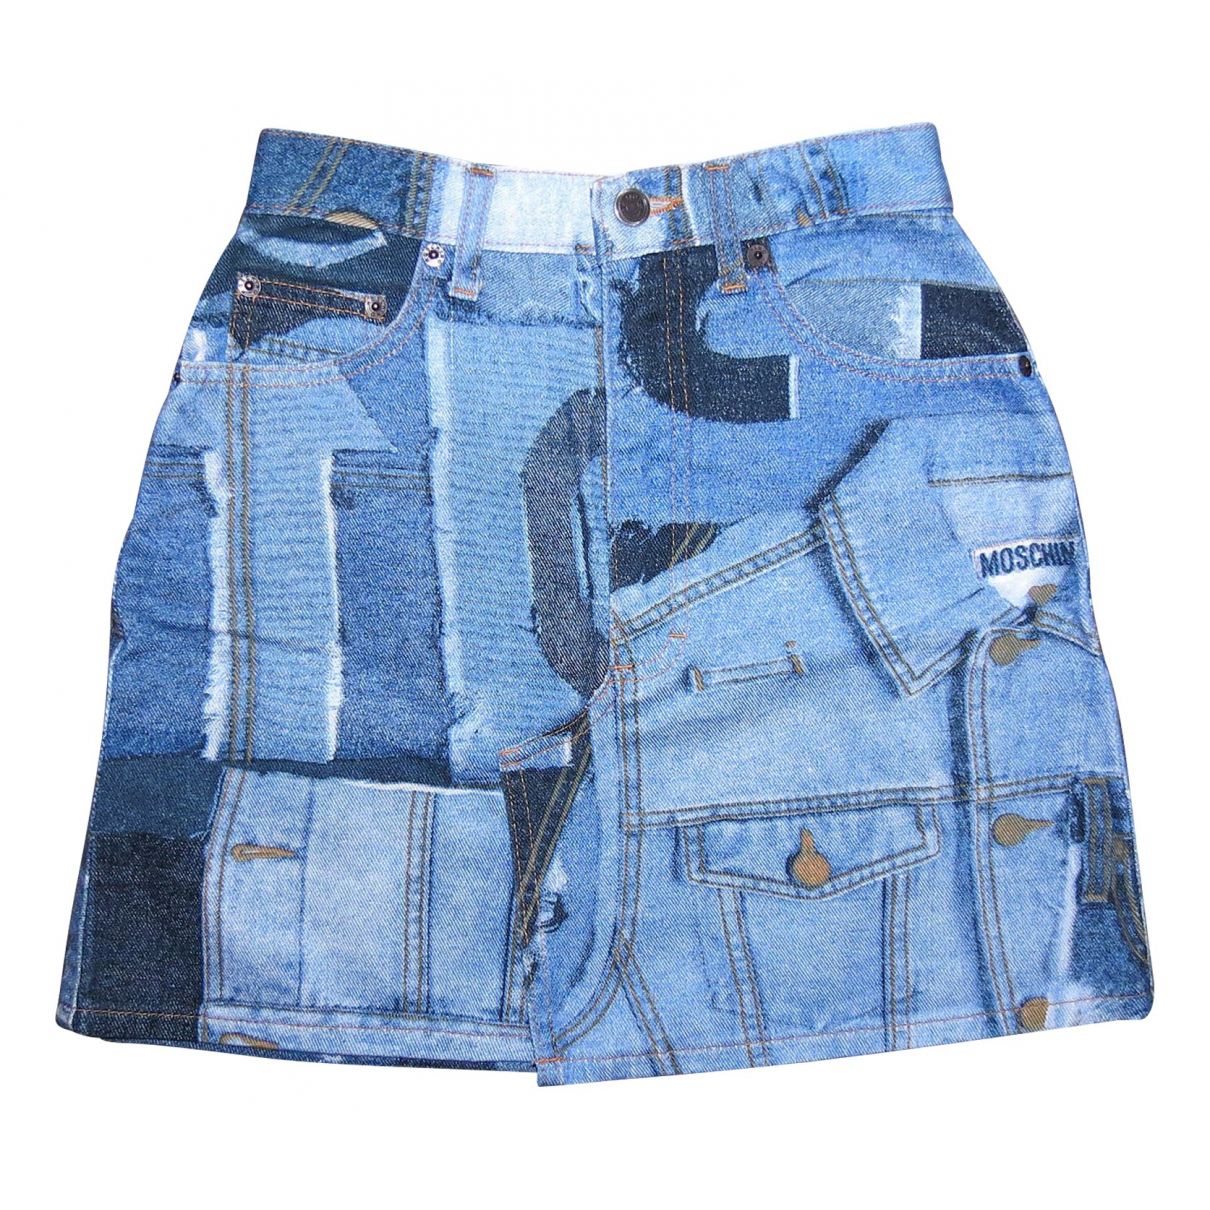 Moschino Cheap And Chic \N Blue Denim - Jeans skirt for Women 40 IT